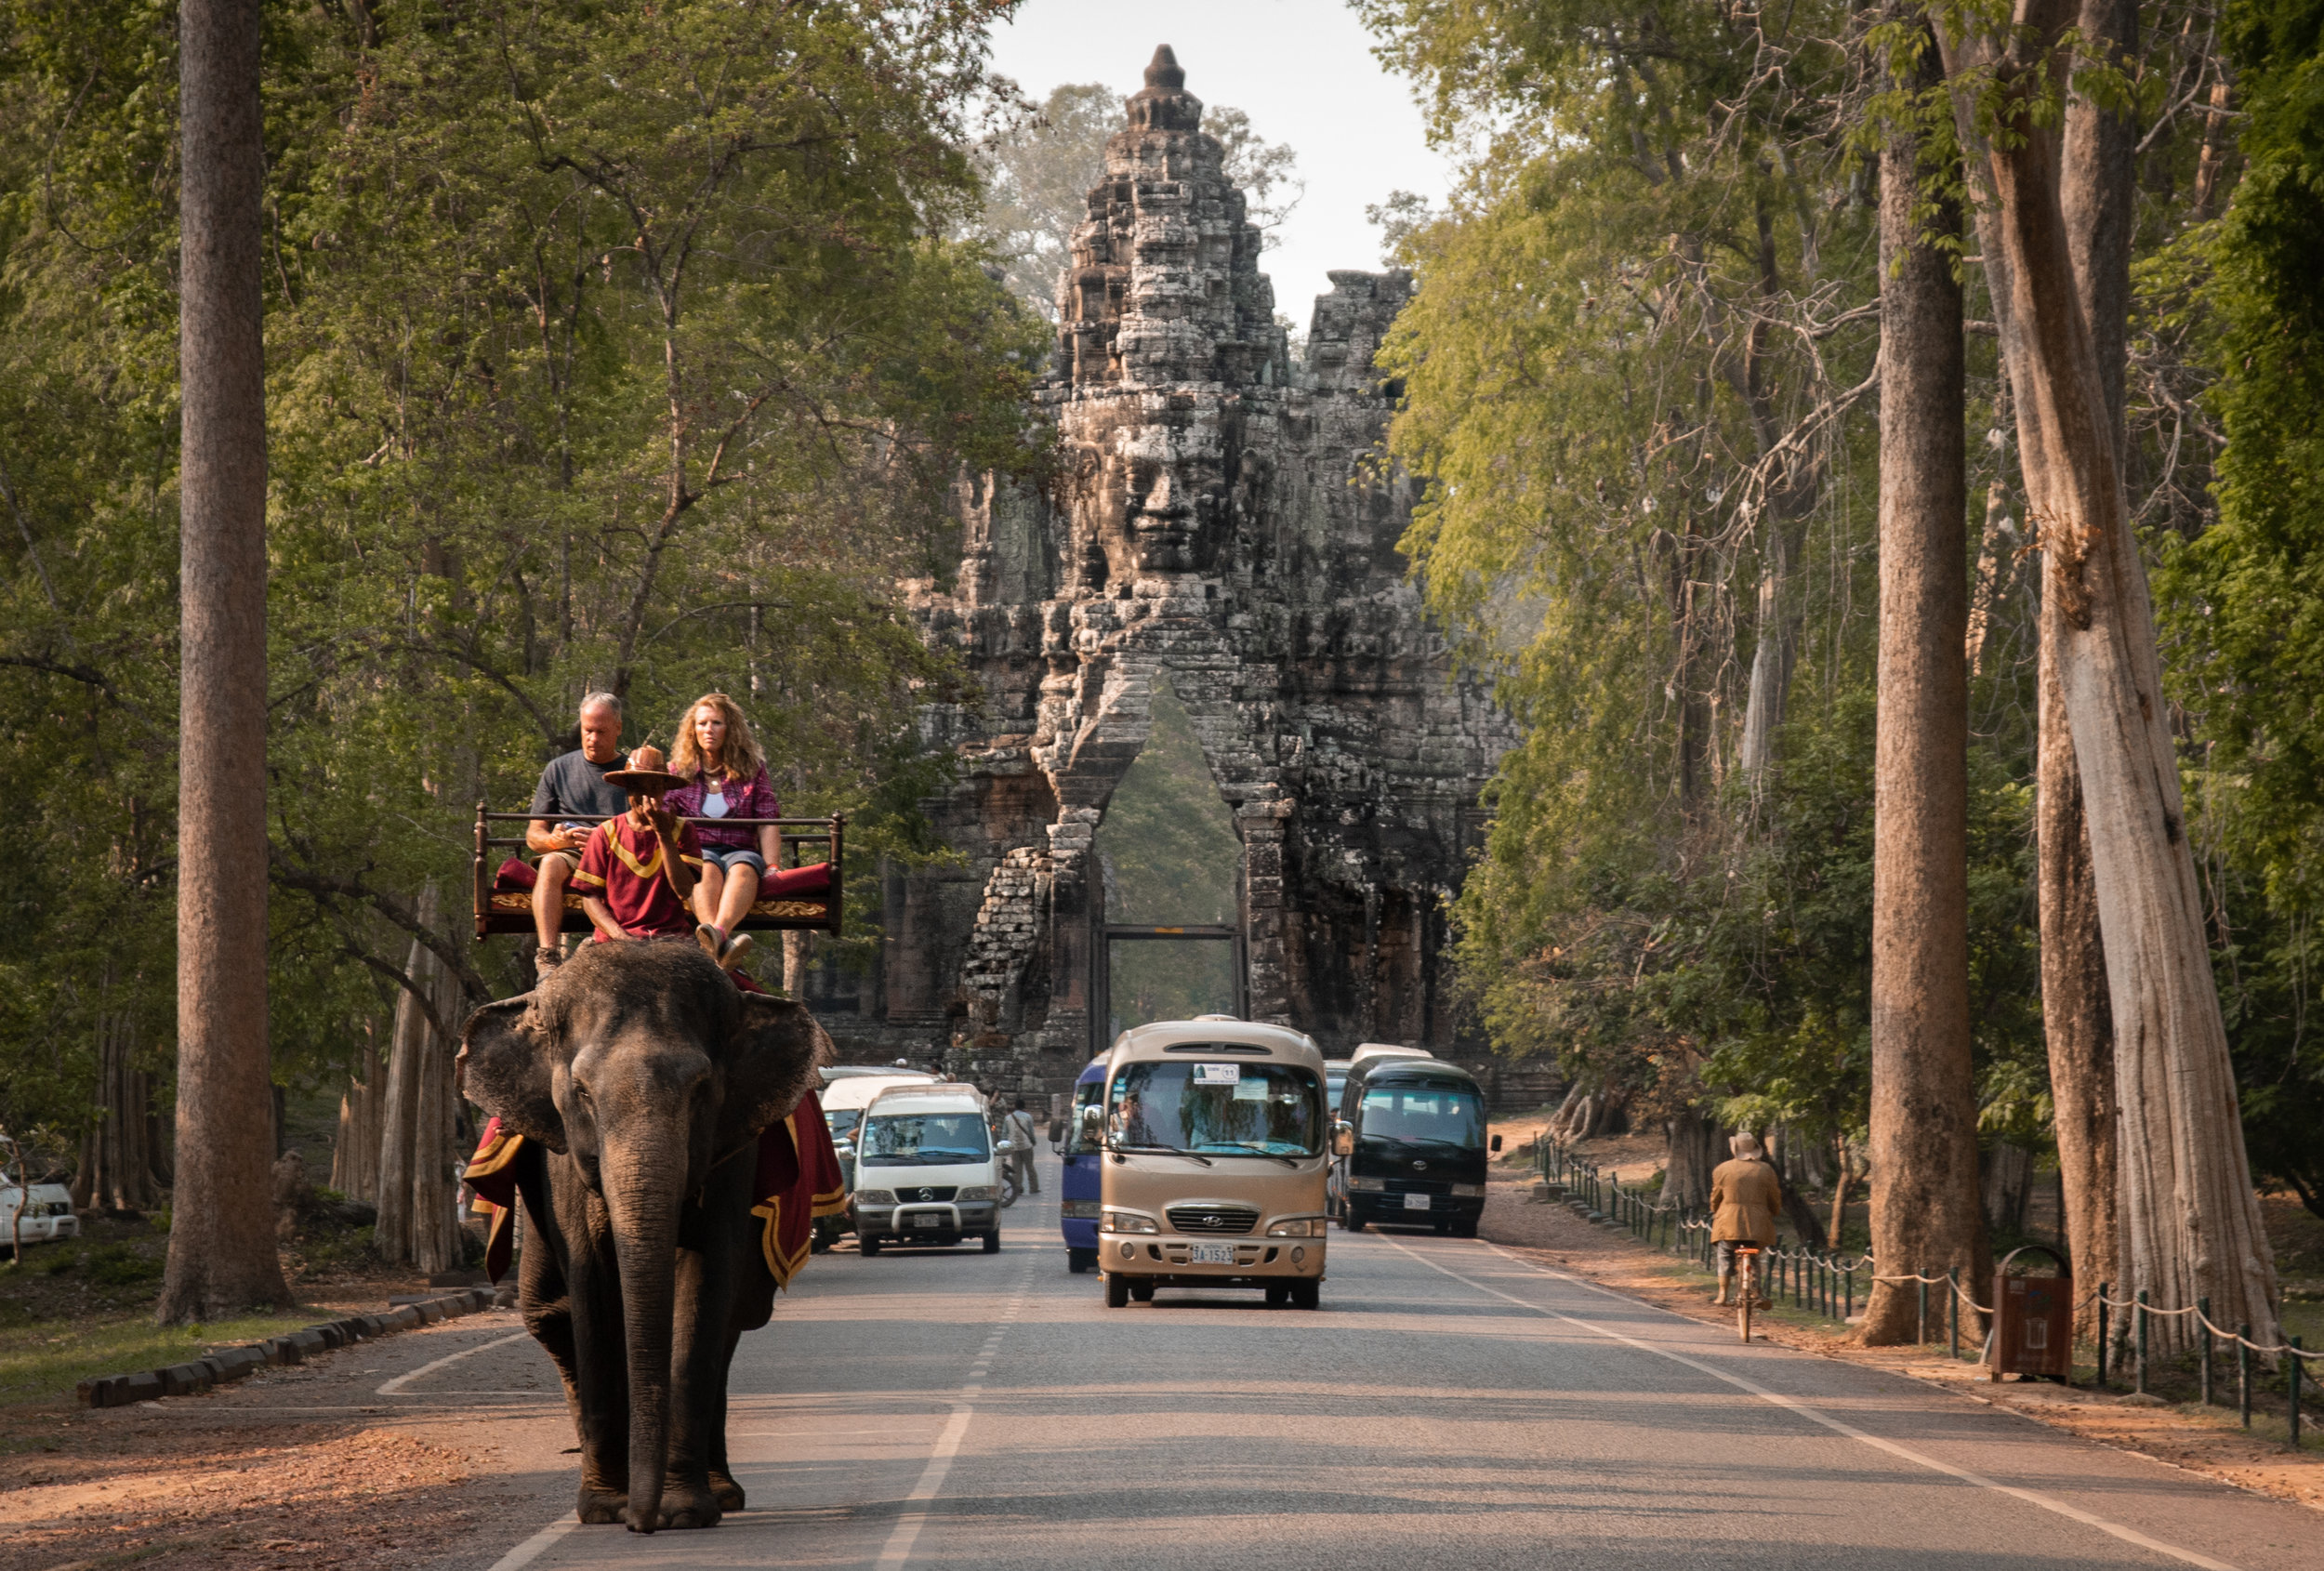 Elephant Riding To End at Cambodia's Angkor Wat - After learning that elephant rides are set to end at the iconic tourist attraction, we used our photographs and research to ensure that this incredible news made international headlines. The story went viral and helped to draw attention to the growing opposition to unethical wildlife attractions.Read more